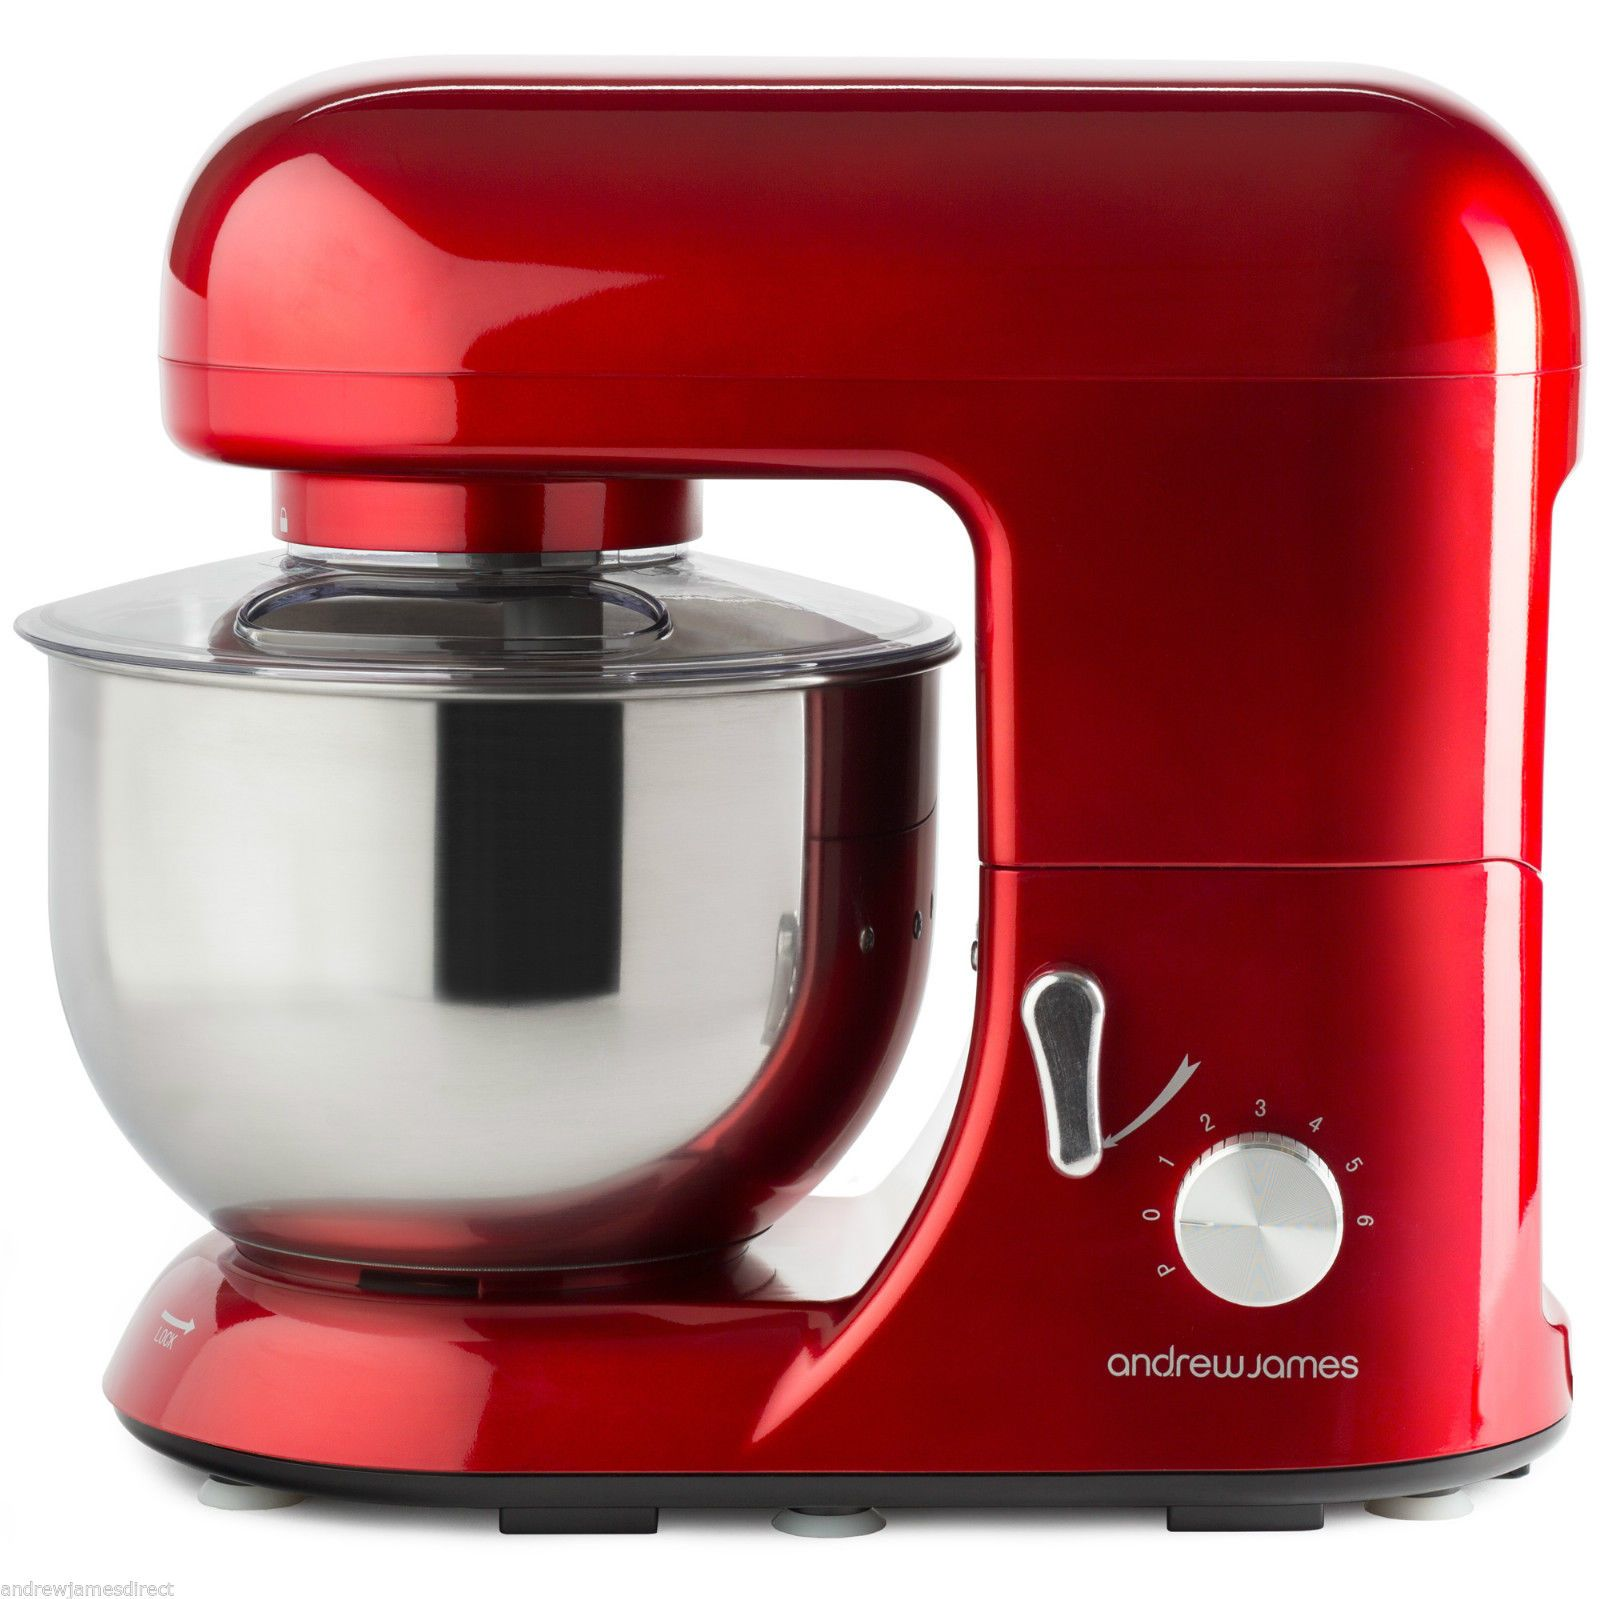 andrew james 1300w pro electric food stand mixer  u0026 splash guard in stunning red andrew james 1300w pro electric food stand mixer  u0026 splash guard in      rh   pinterest com